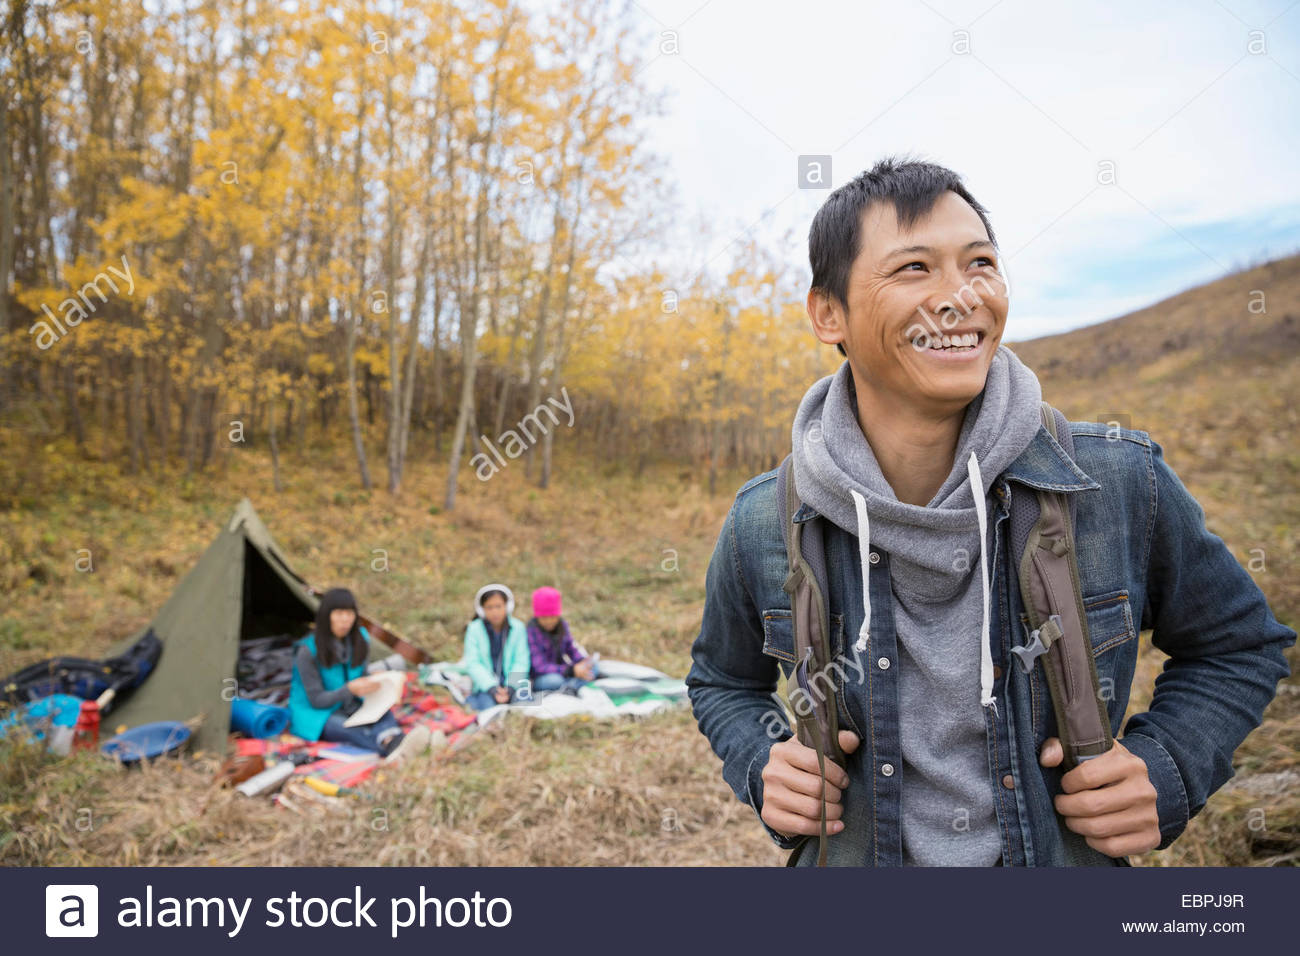 Smiling man camping en famille Photo Stock